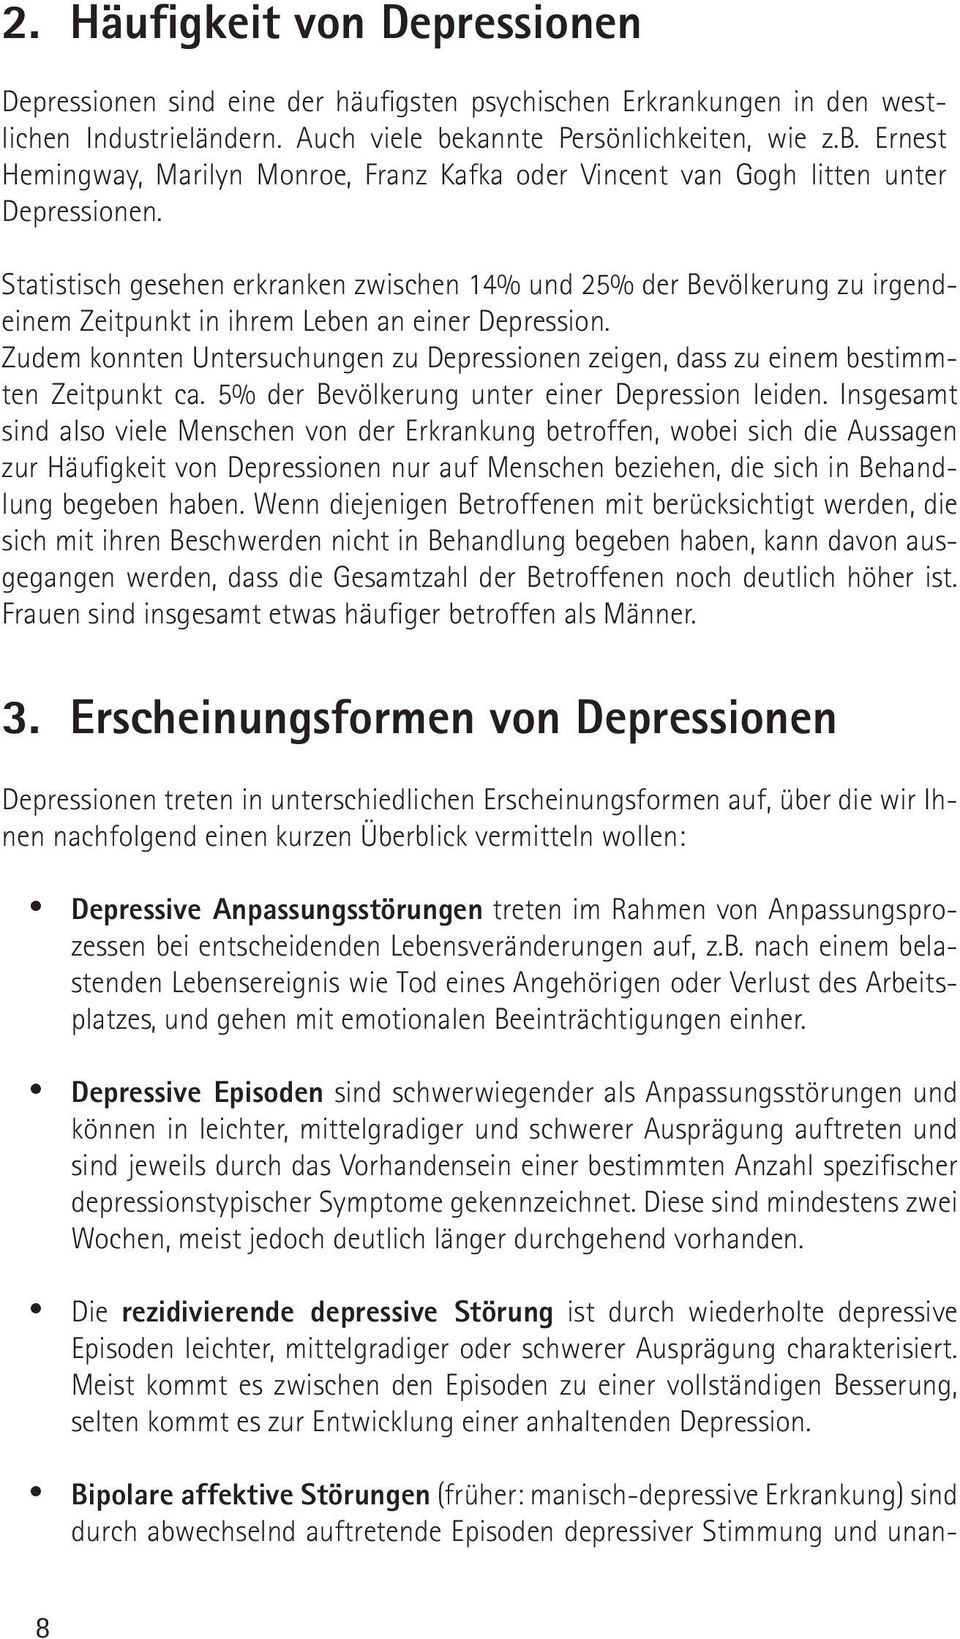 Contemporary Depression Und Sucht Arbeitsblatt Picture Collection ...